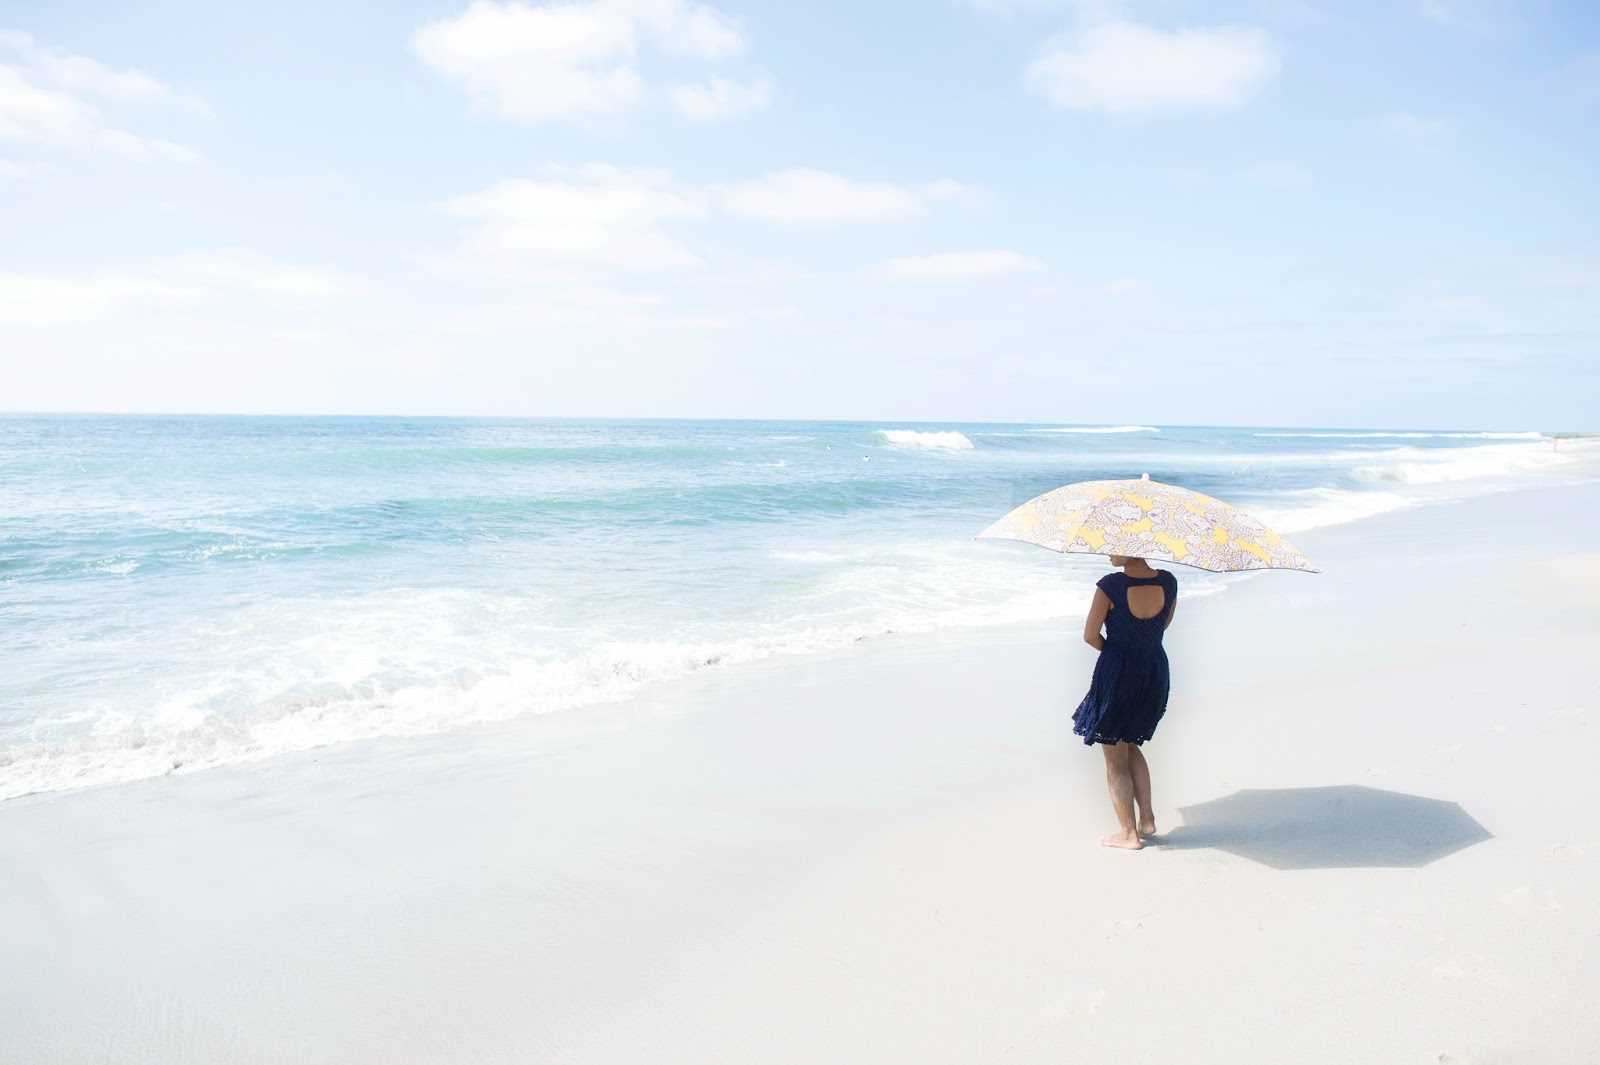 woman alone on a beach with a parasol staring out at a blue sea